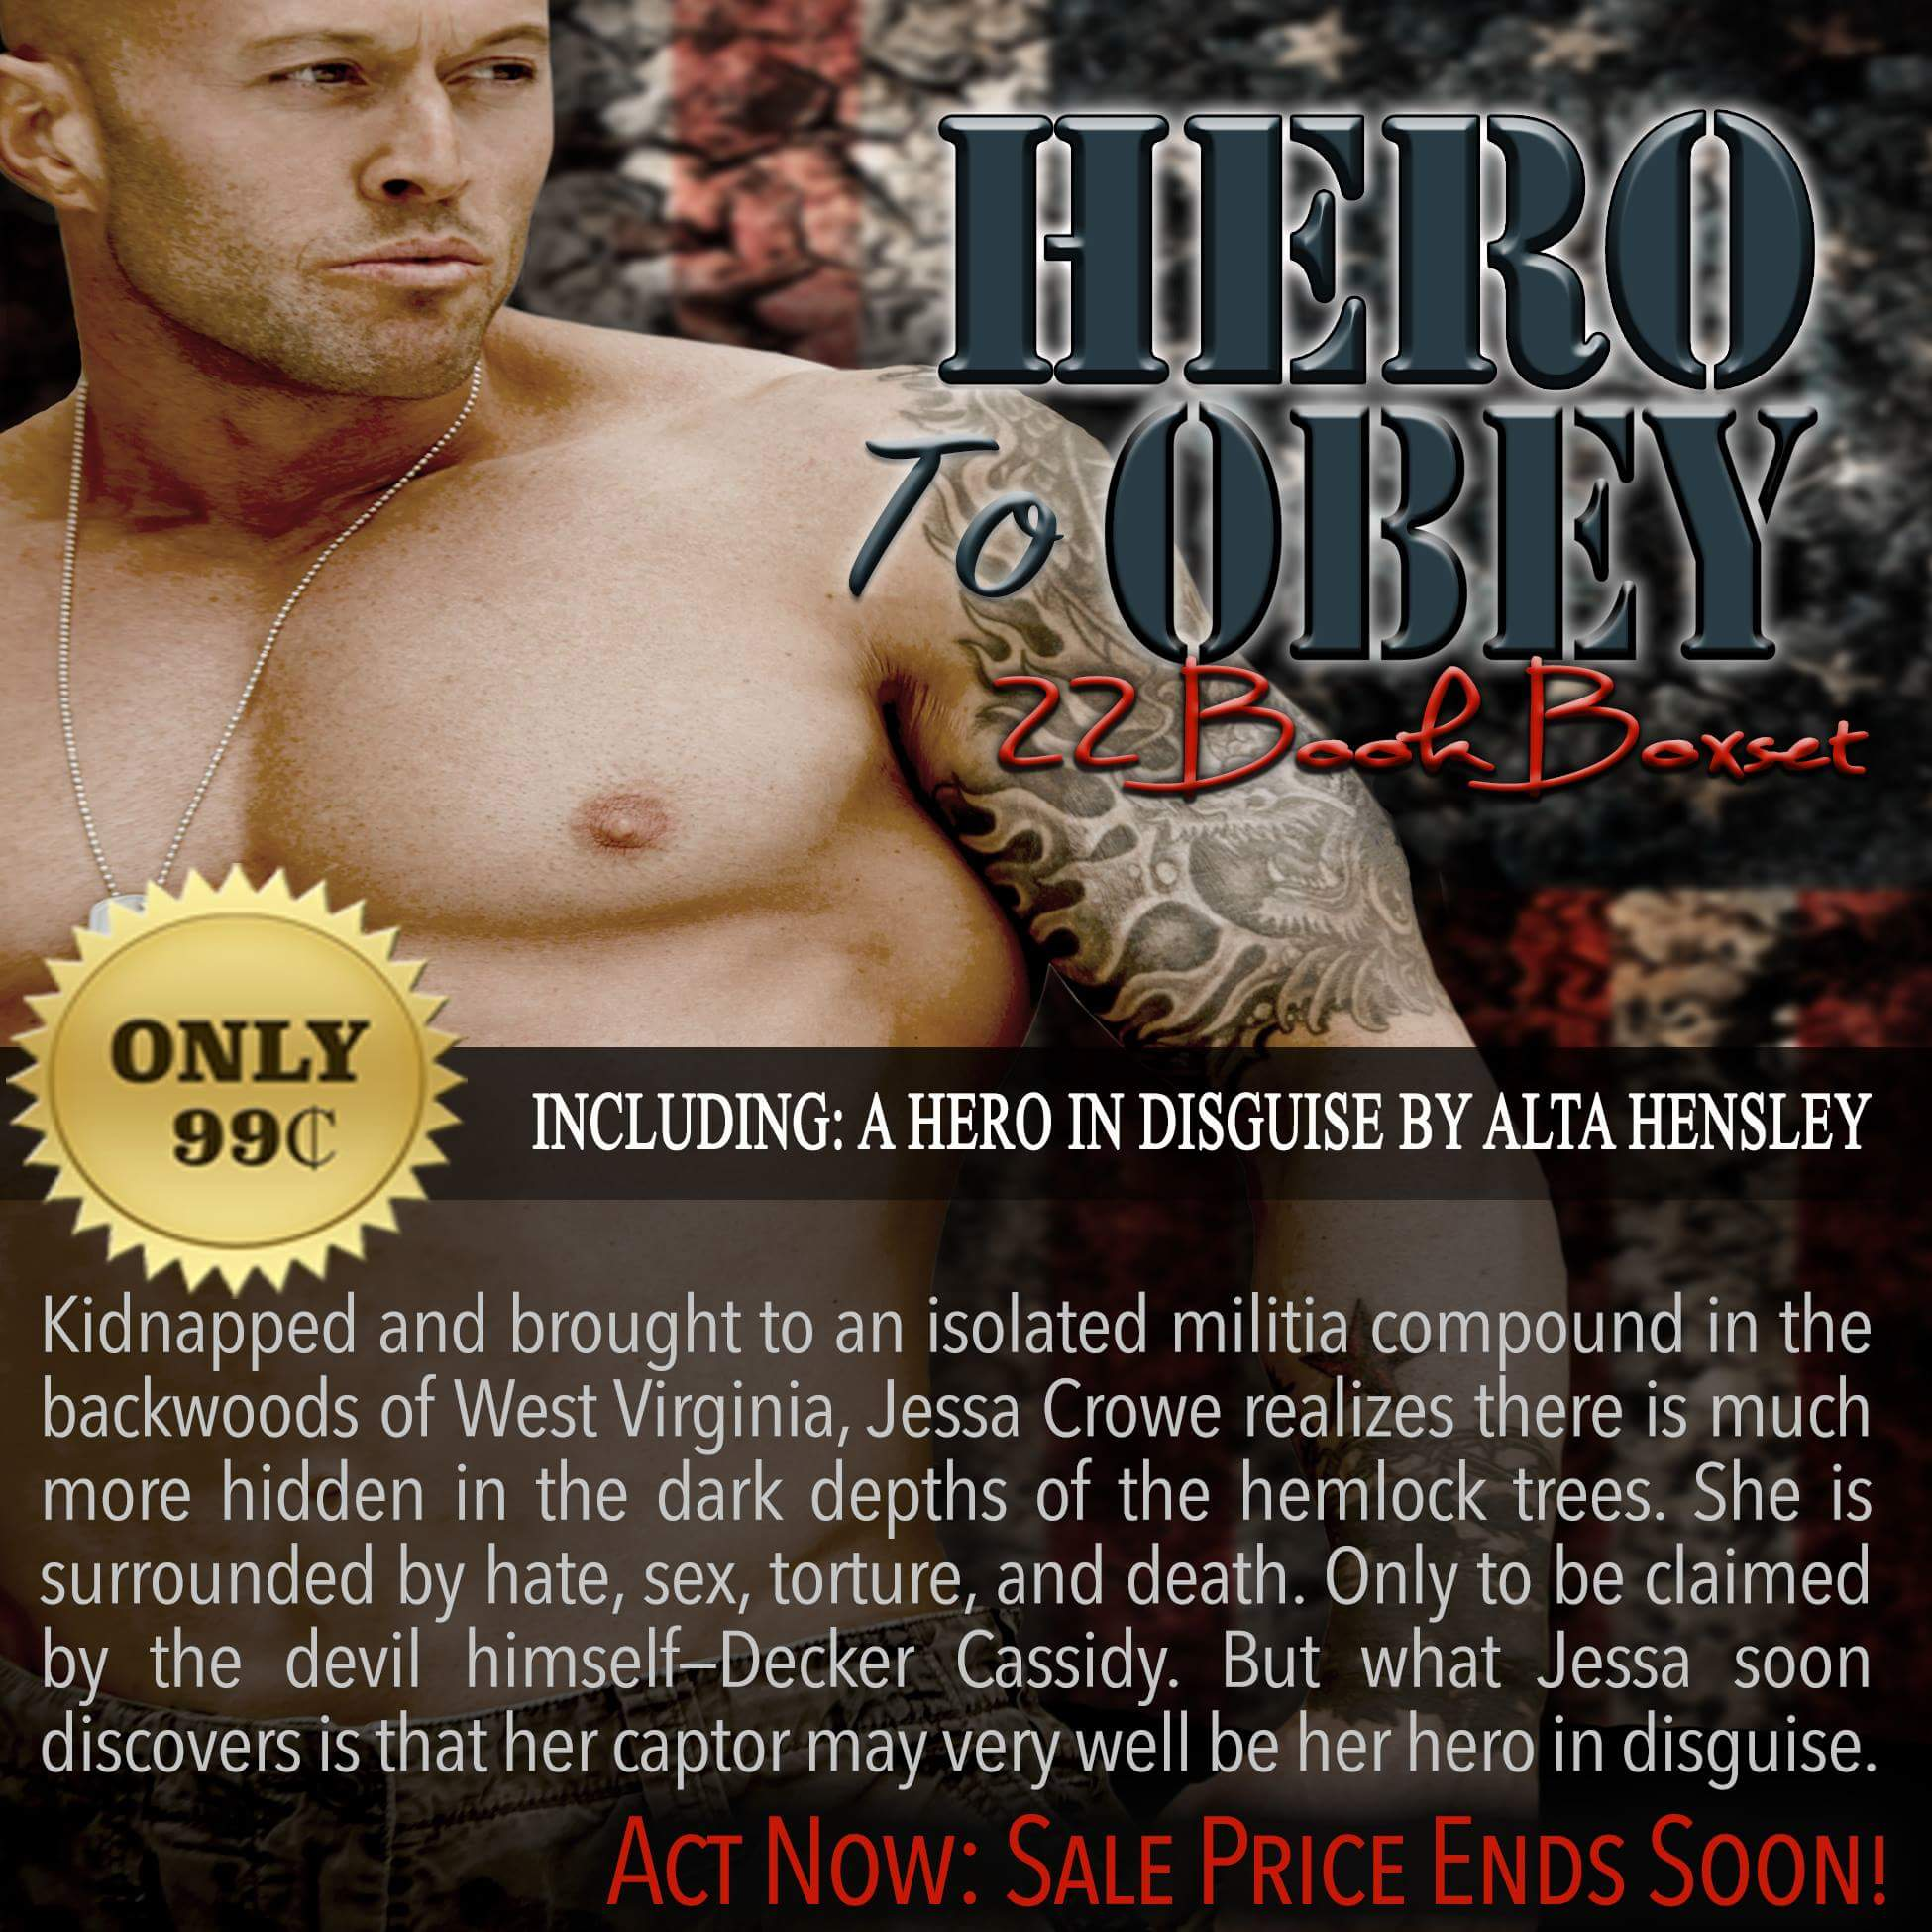 Hero To Obey Book Cover Model Actor John Joseph Quinlan by Alta Hensley #JohnQuinlan #Hero2obey